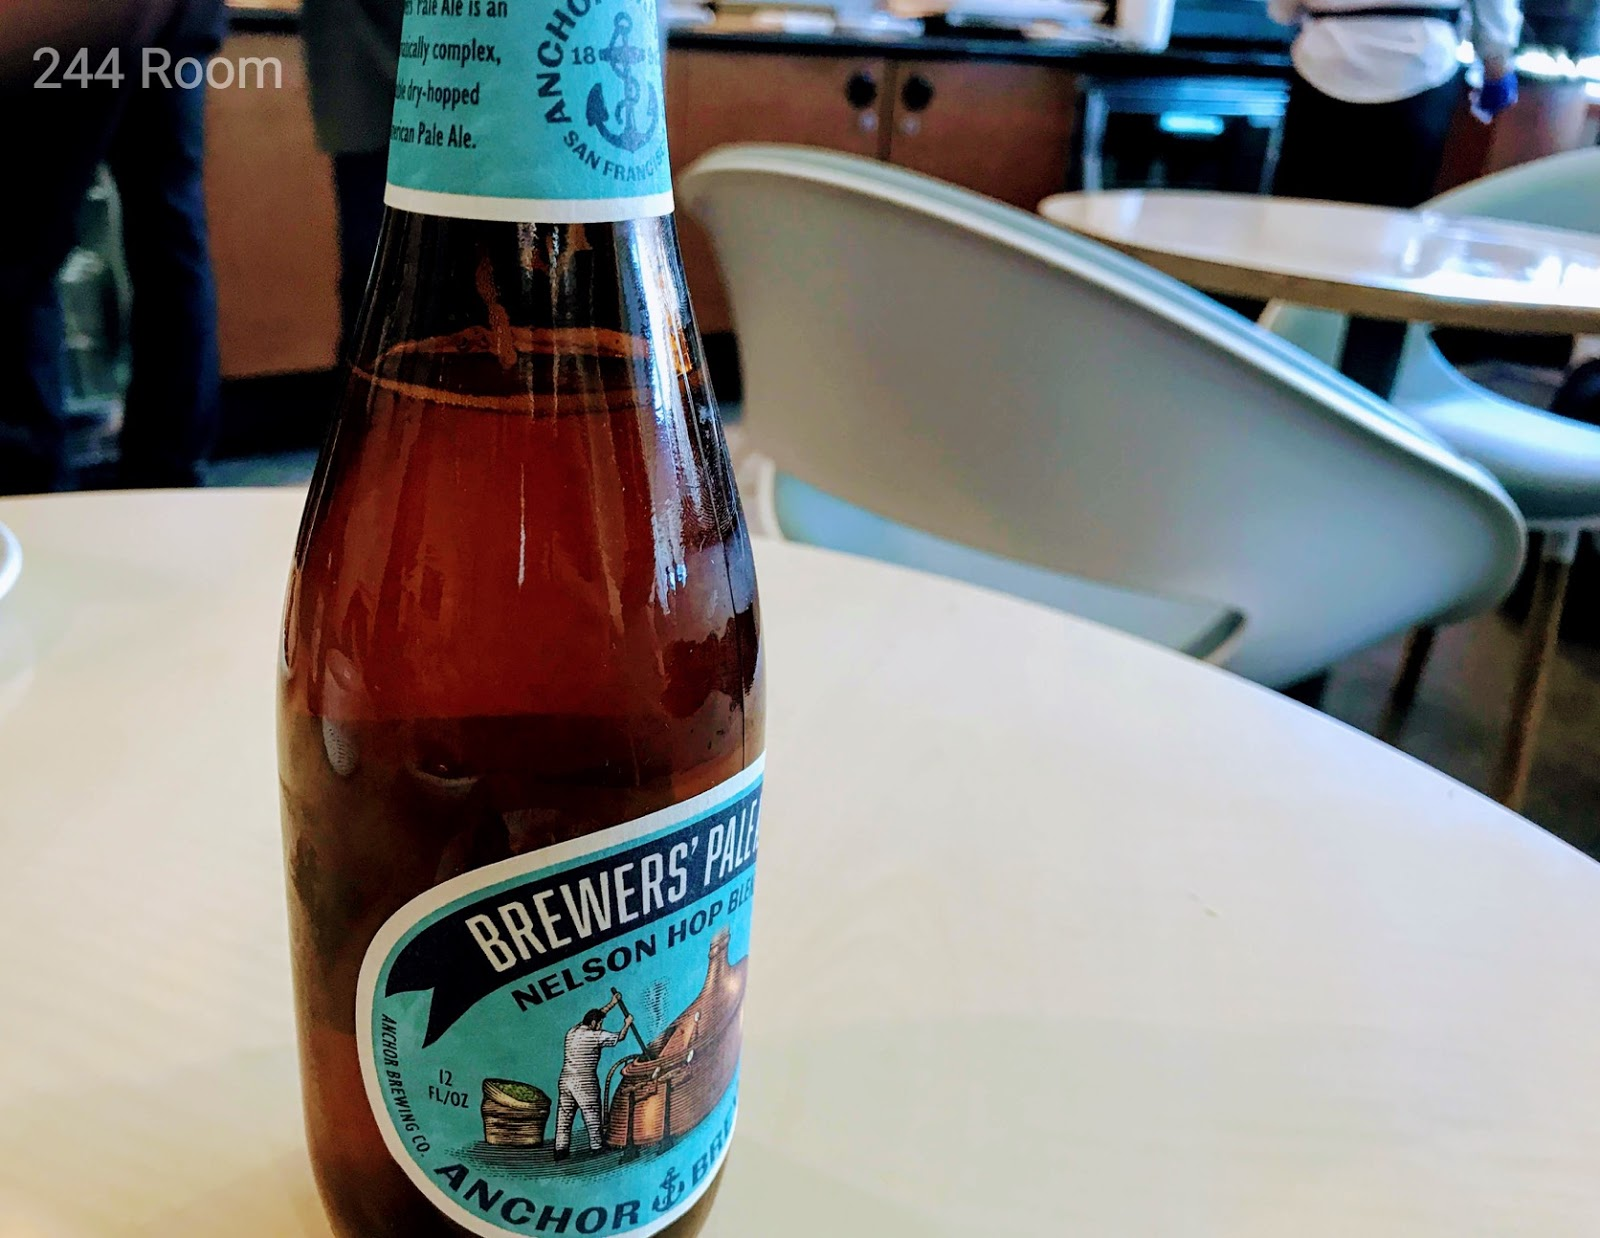 SFO Air France KLM Lounge beer